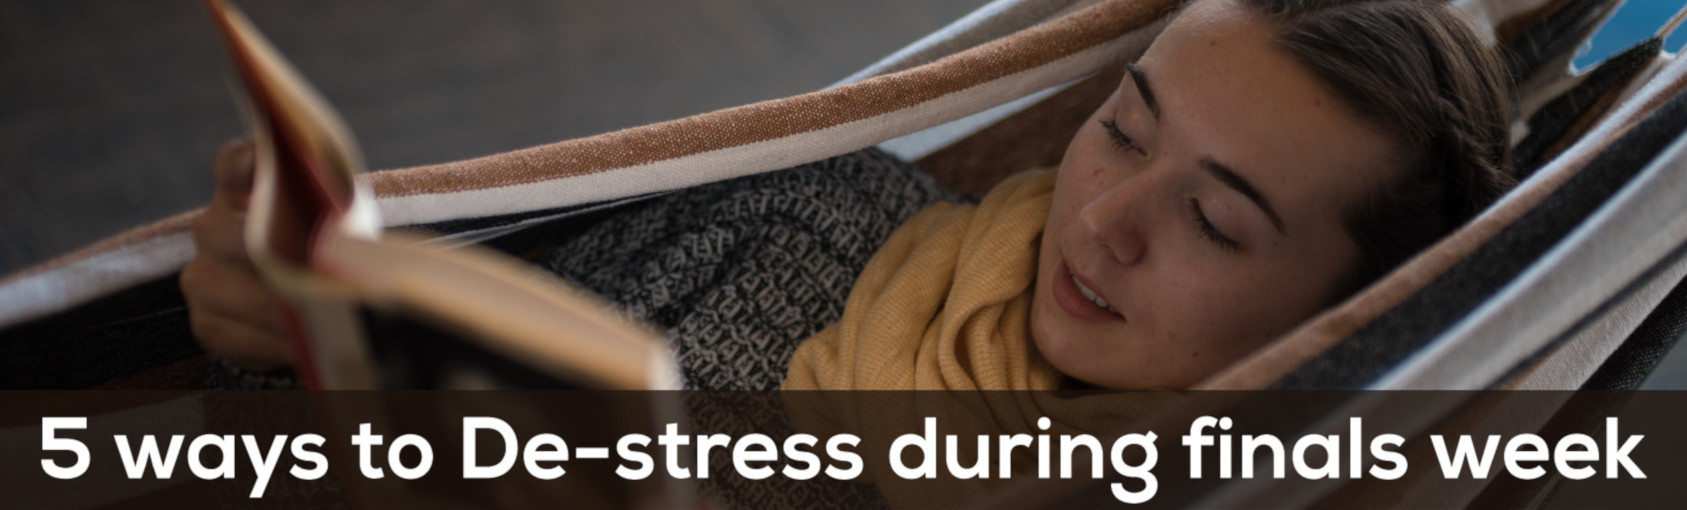 5 Ways to De-stress During Finals Week banner